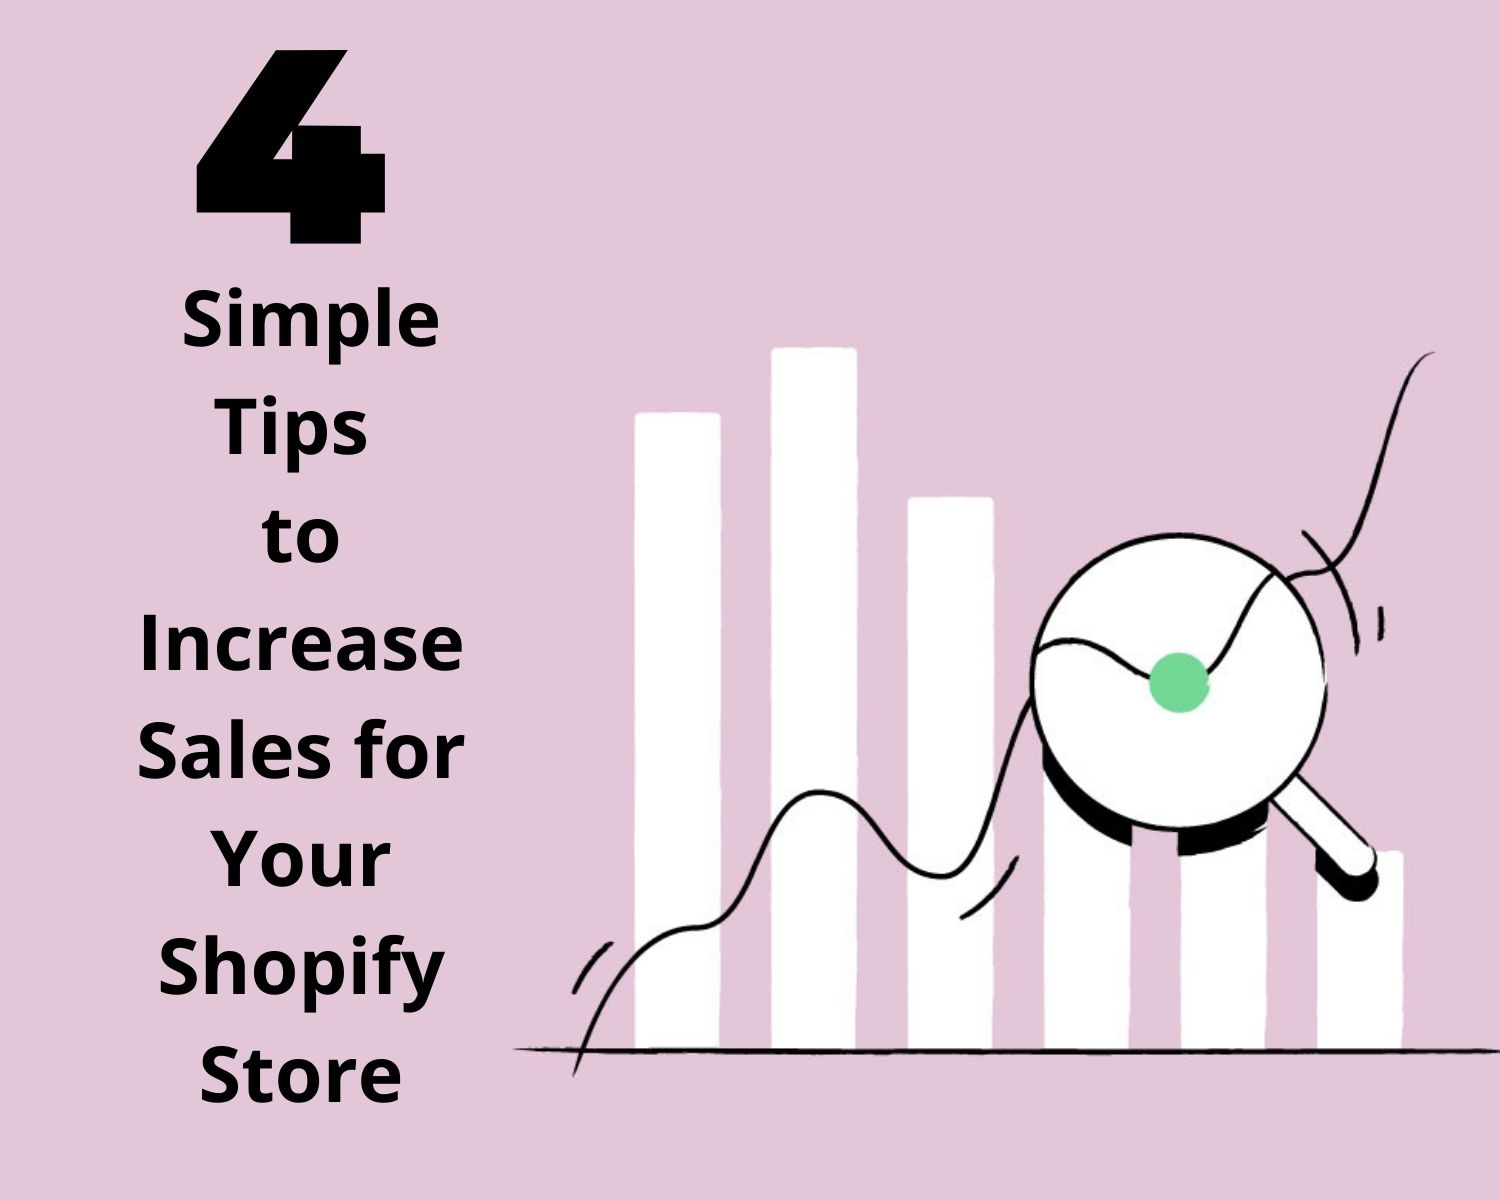 4 Simple Tips to Increase Sales for Your Shopify Store